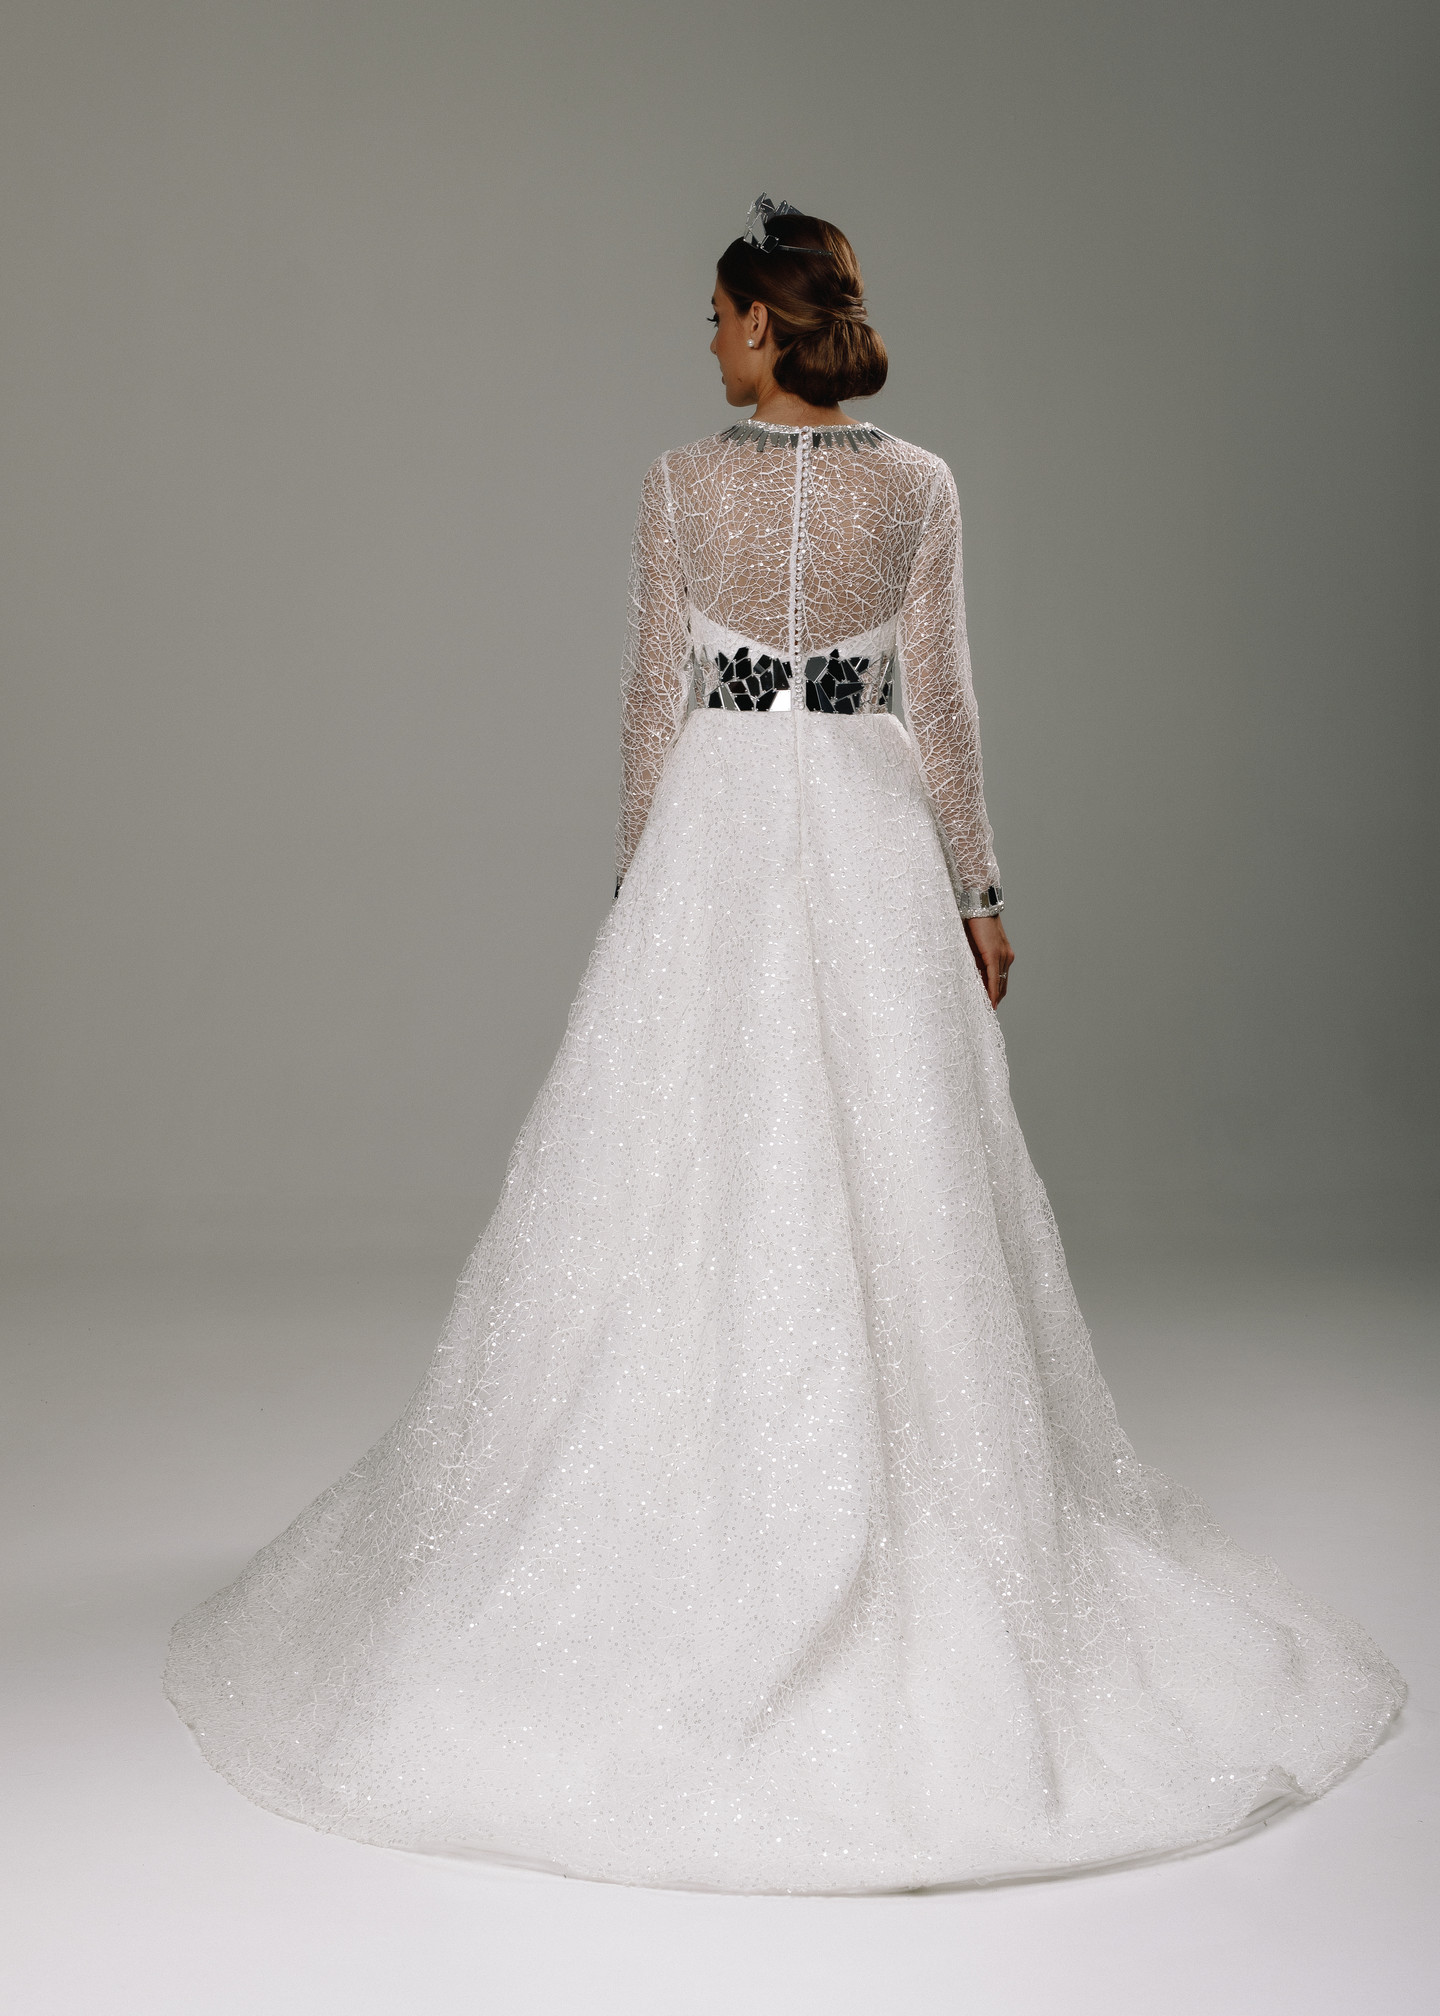 Gerda gown, 2020, couture, dress, bridal, off-white, lace, Gerda, embroidery, A-line, sleeves, train, satin